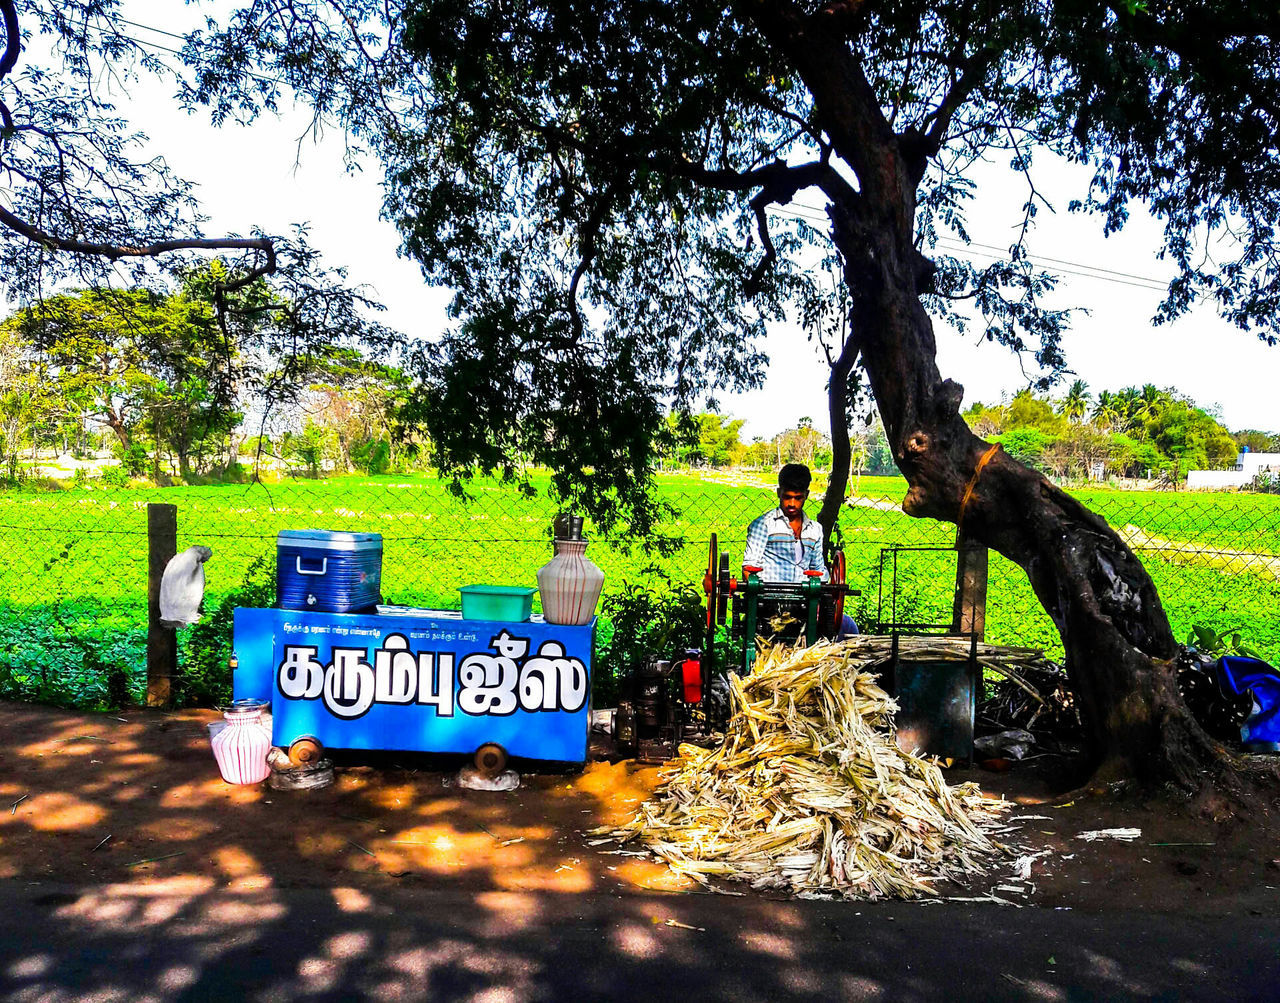 Sugarcane juice shop Street Photography Juice Juiceforlife Sugarcanejuice EyeEm Nature Lover EyeEm Best Shots - Nature EyeEm Best Edits Eye4photography